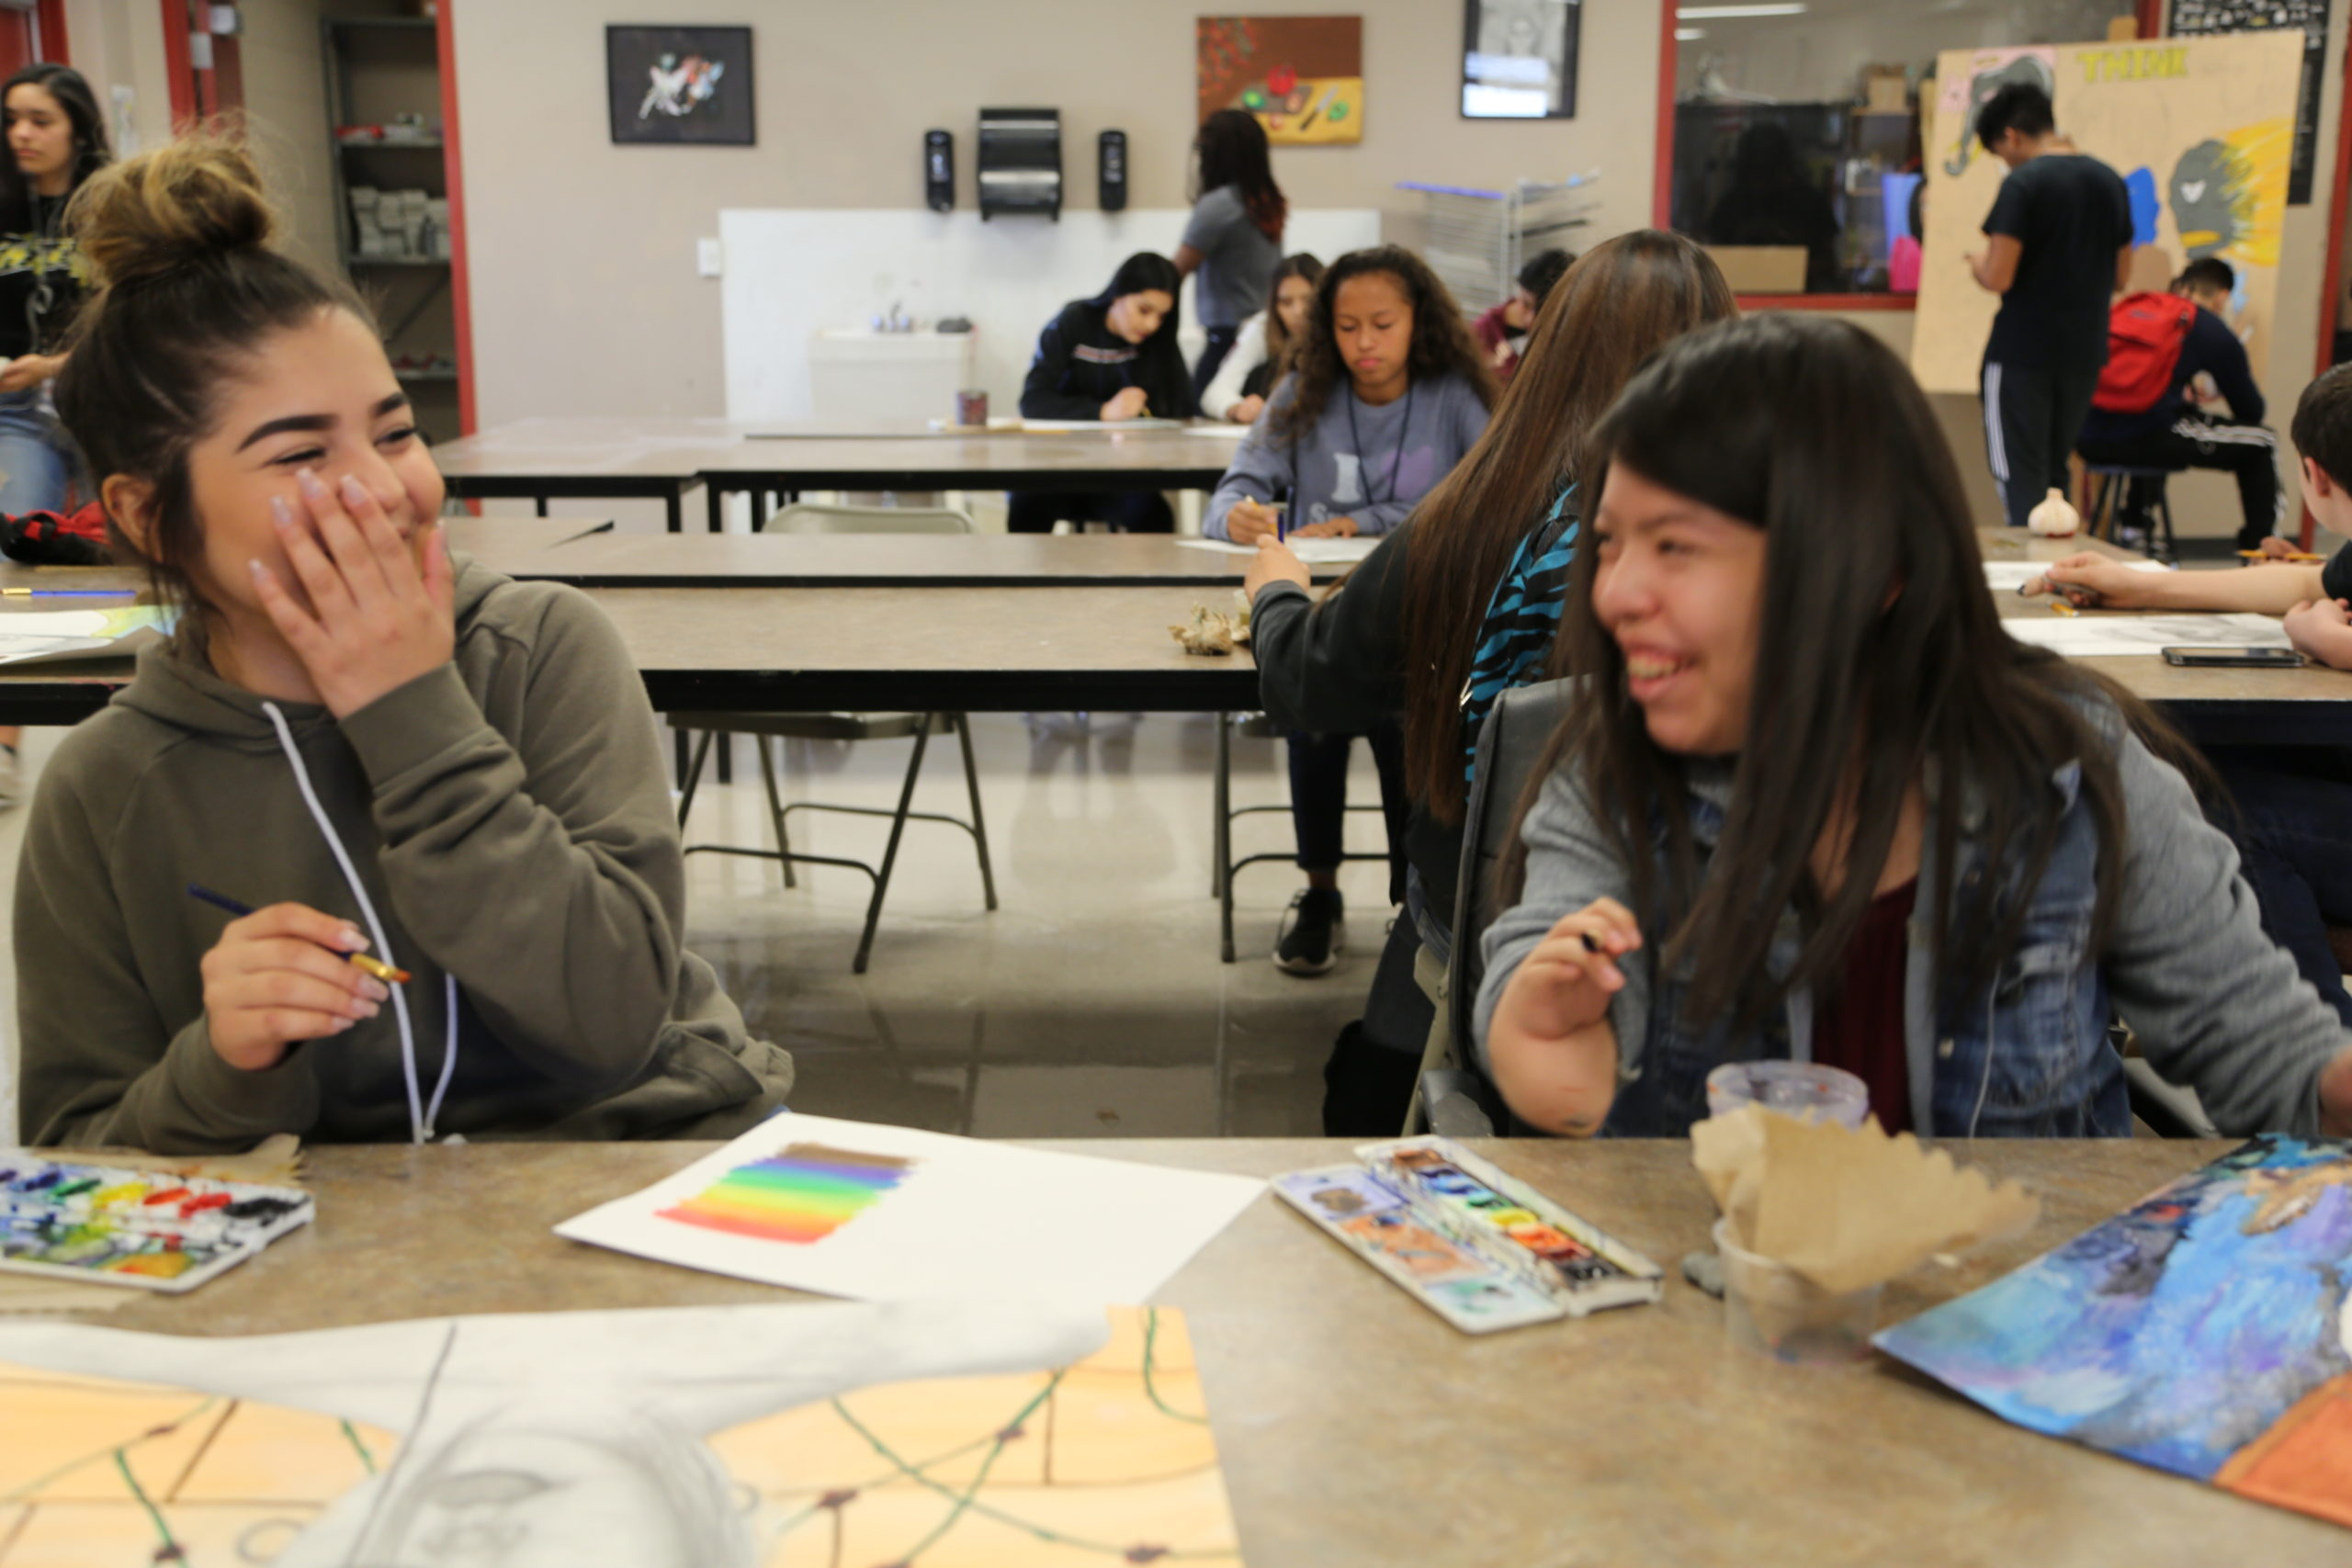 Students At Sierra Linda High School Catch Up With Each Other While Working On An Assignment In Their Art Class. Photo By Brooke Martinez/ AZEdNews